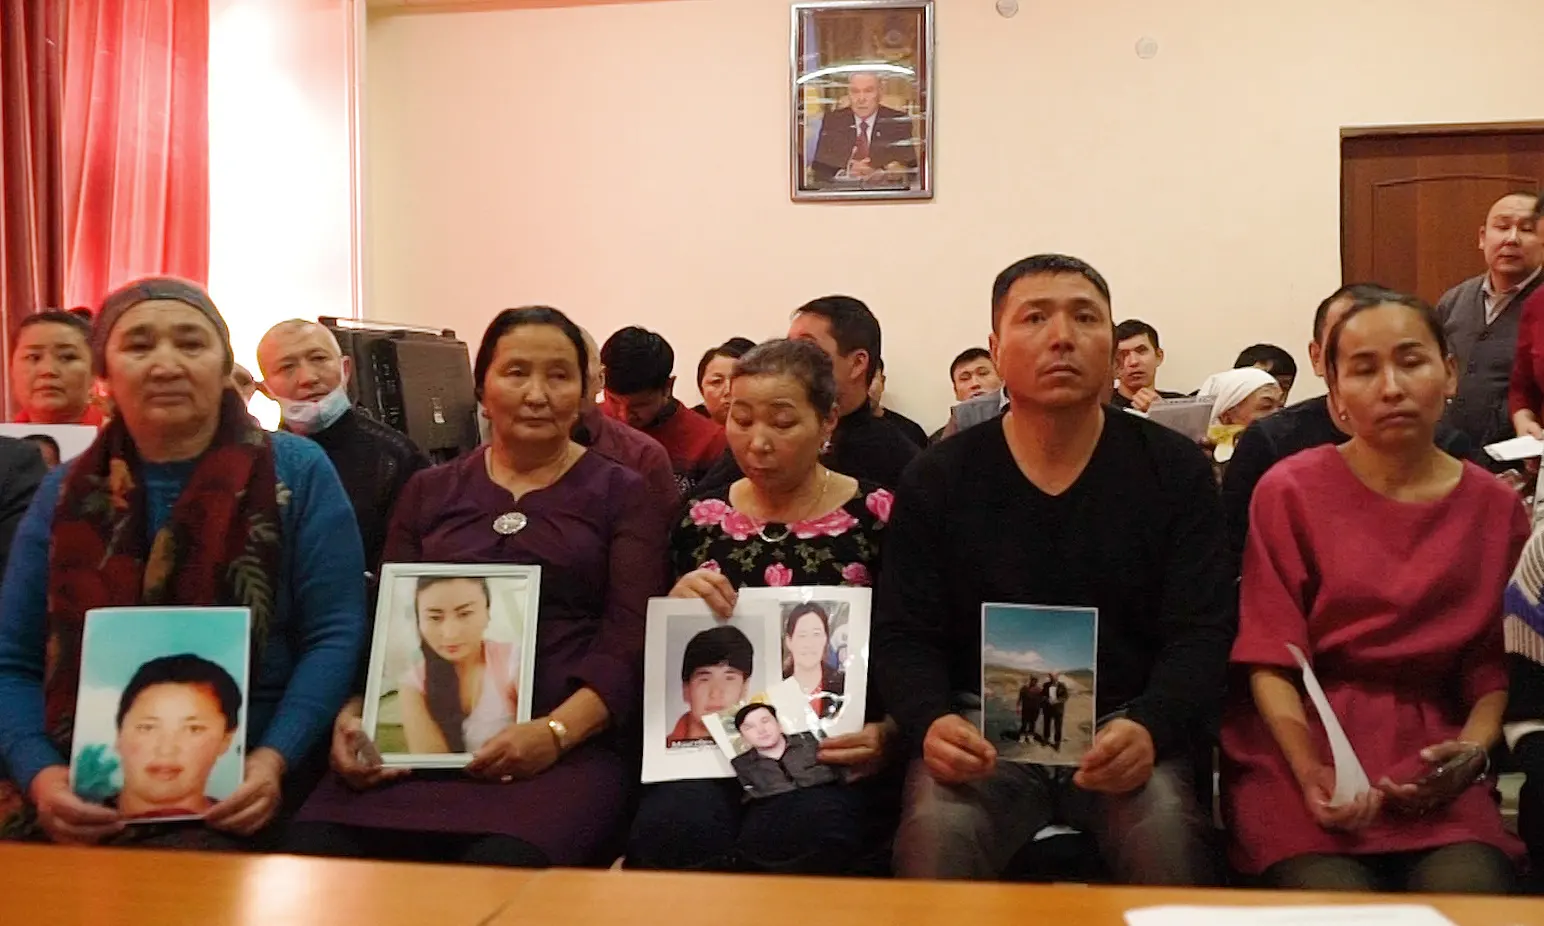 Kazakh relatives hold up photos of missing relatives in this image dated to December. Photo:  Dake Kang/AP